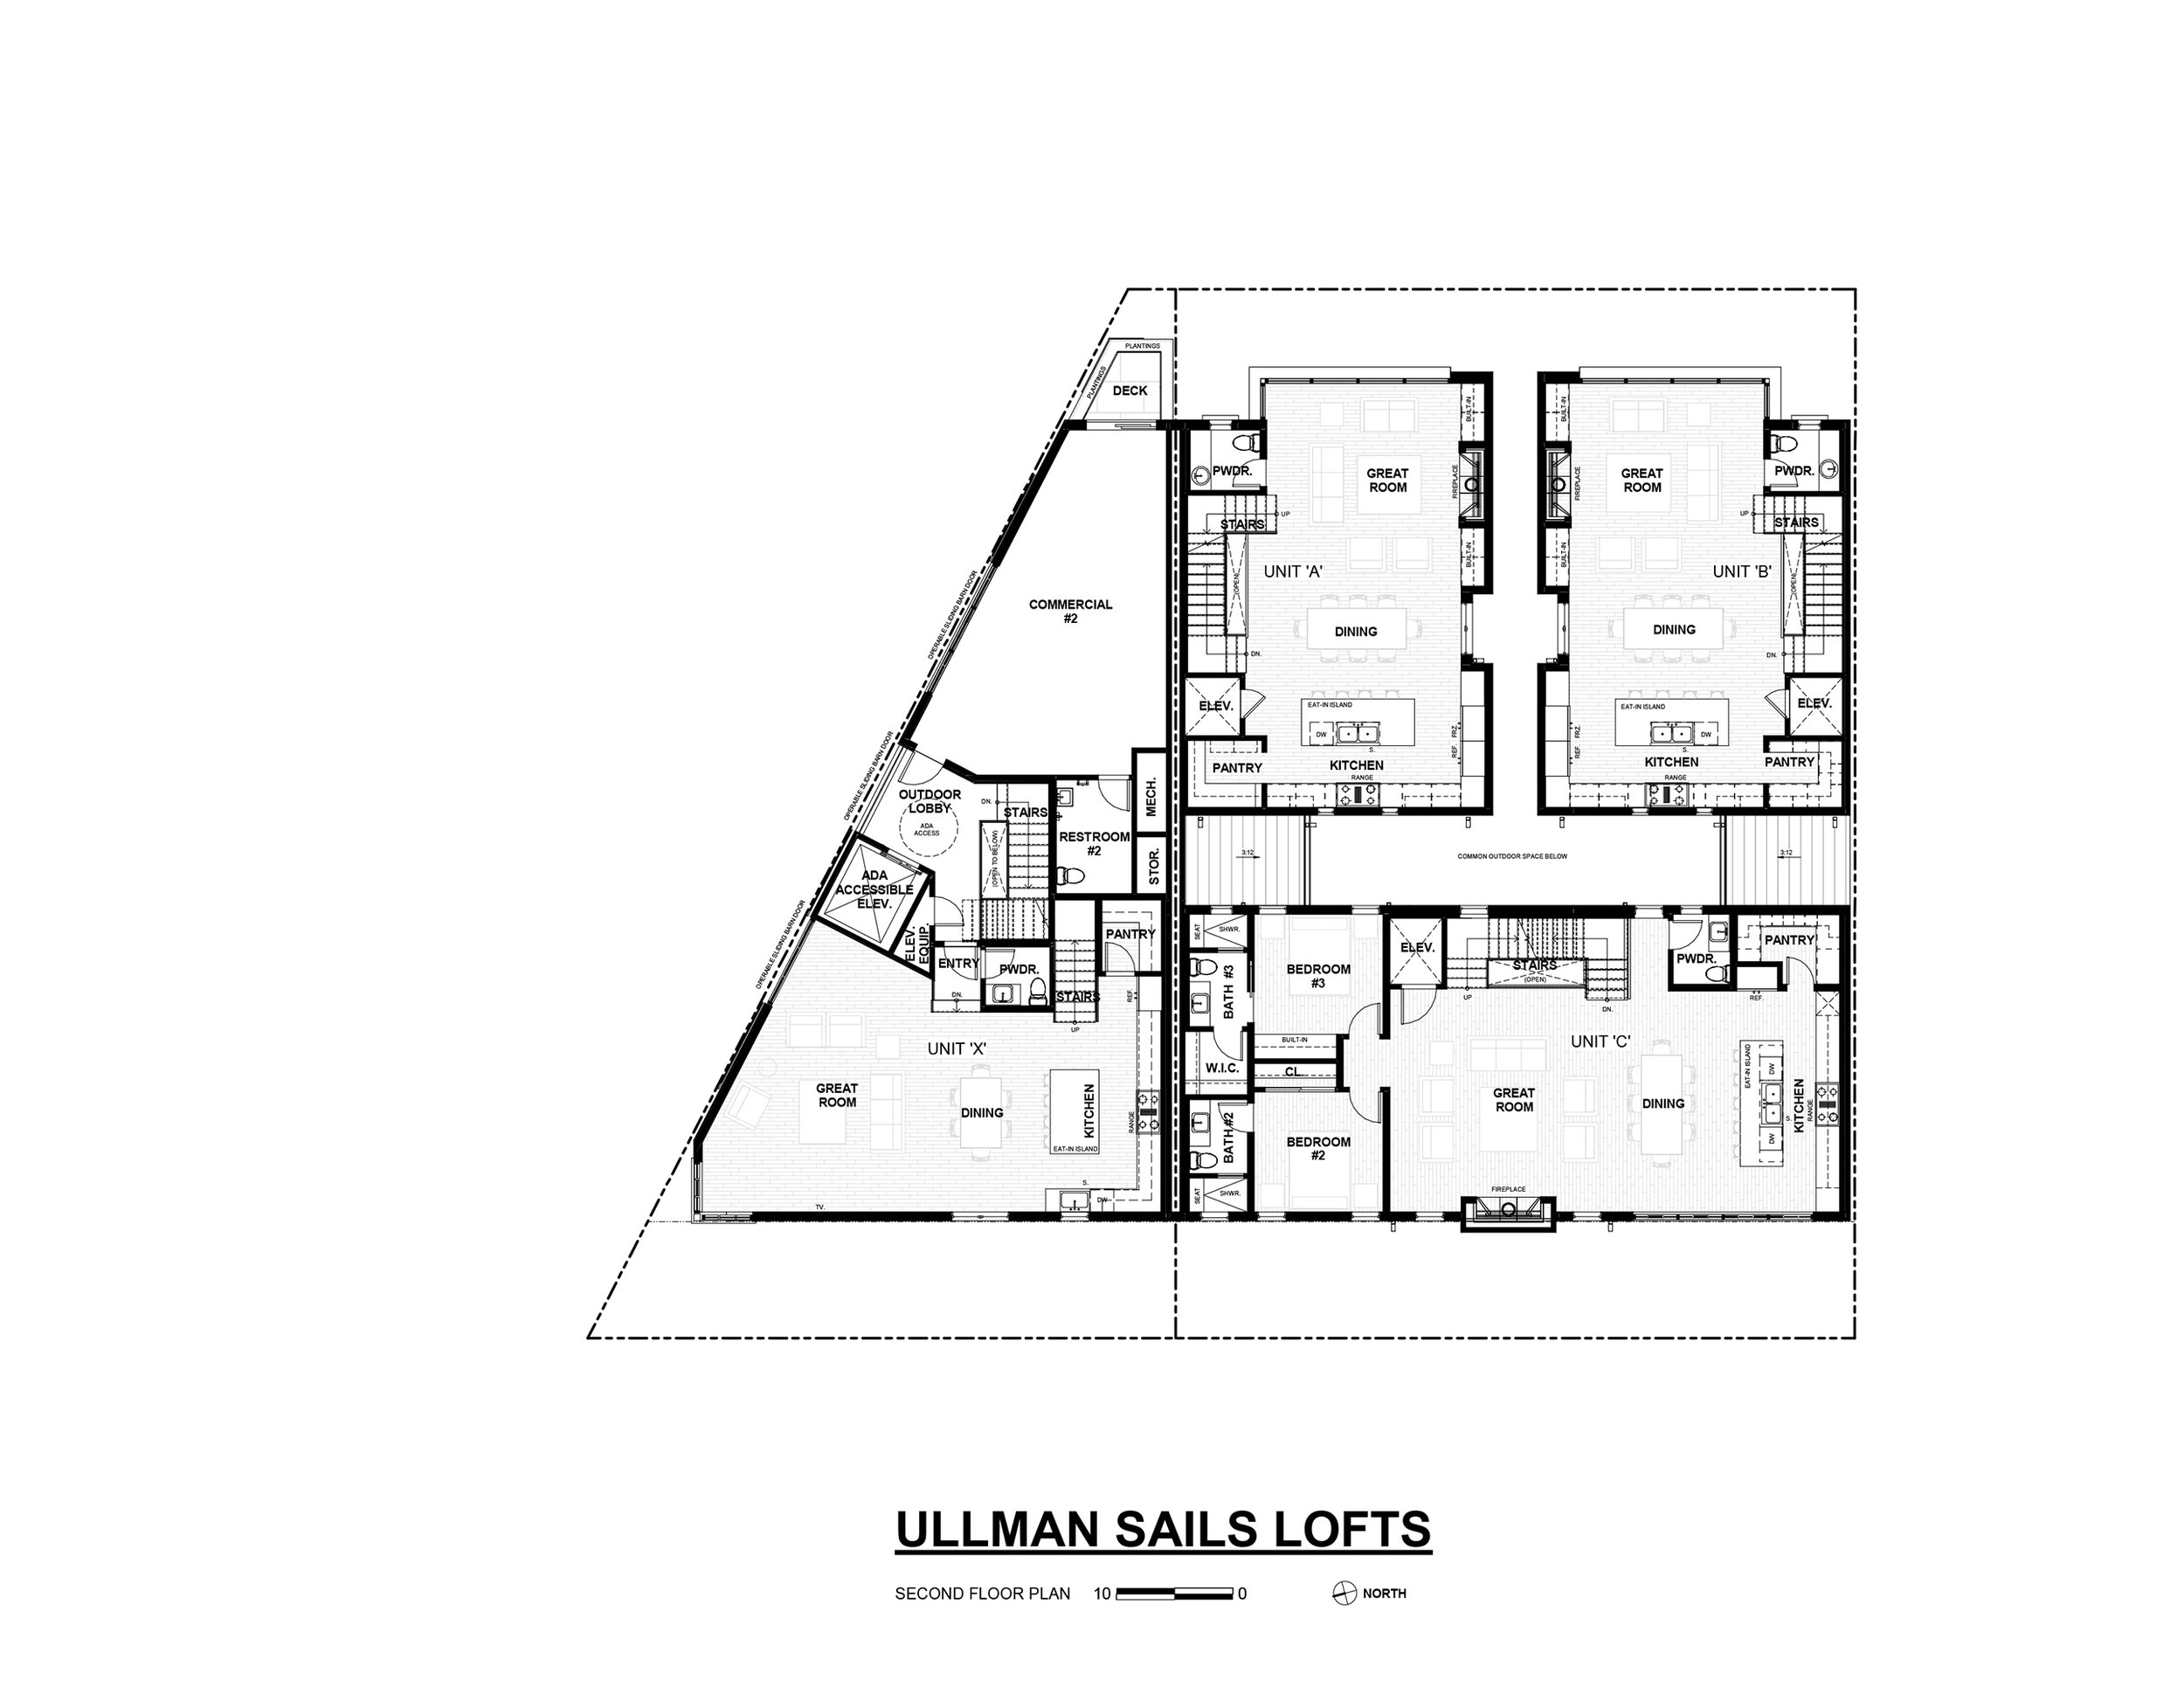 5607_DA2017_09 SECOND FLOOR PLAN.jpg